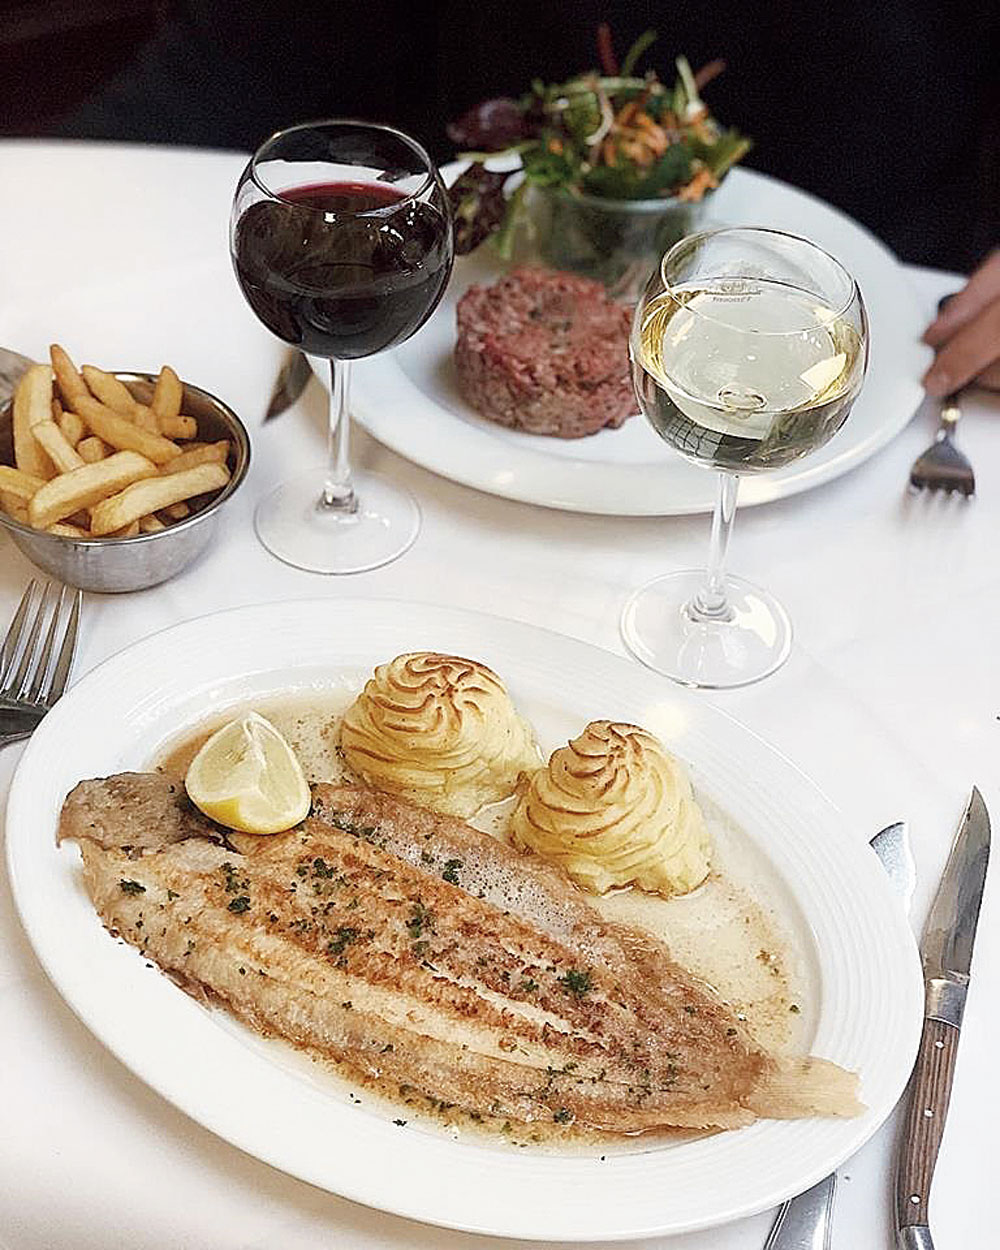 Sole Meuniere, Duchesse Potatoes and Tartare of Beef with fries at Chez Vincent